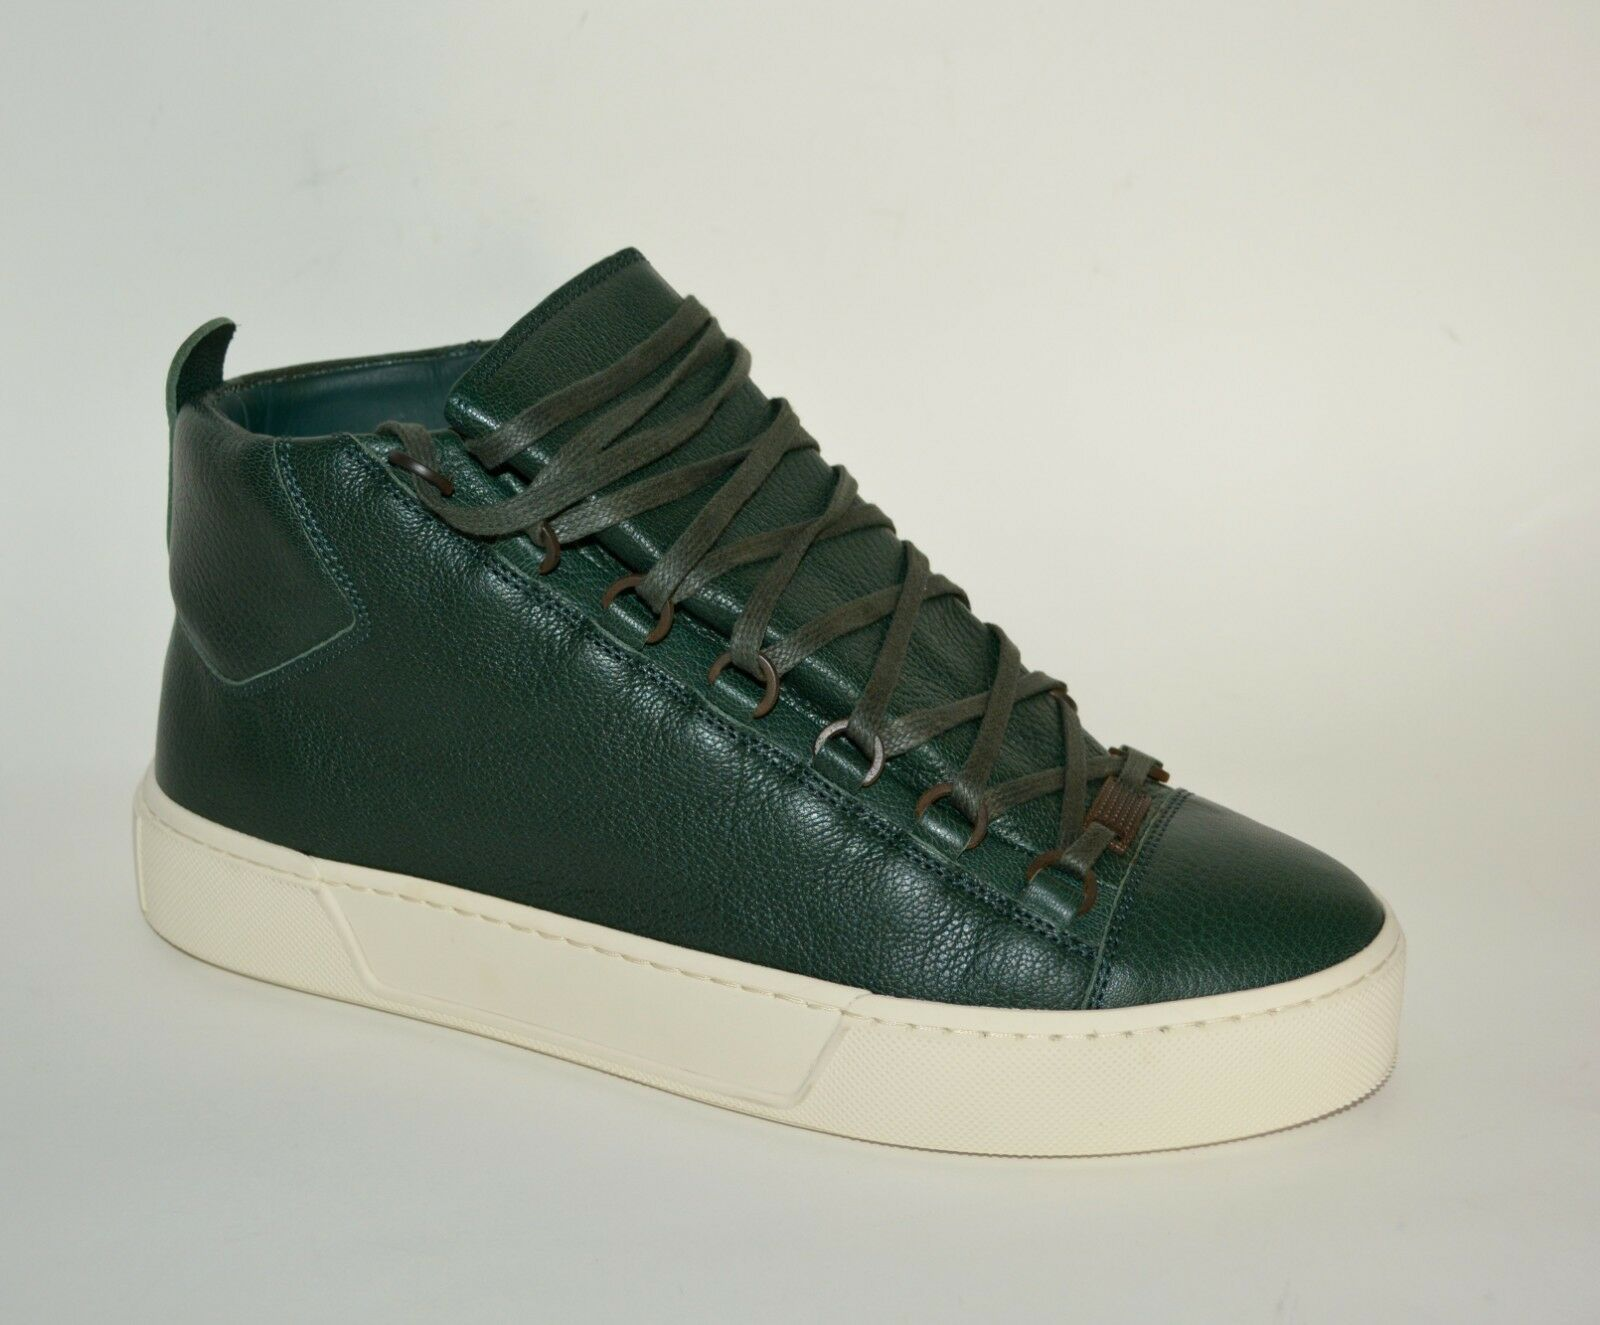 NEW BALENCIAGA HITOP LEATHER SNEAKERS US 9 MENS